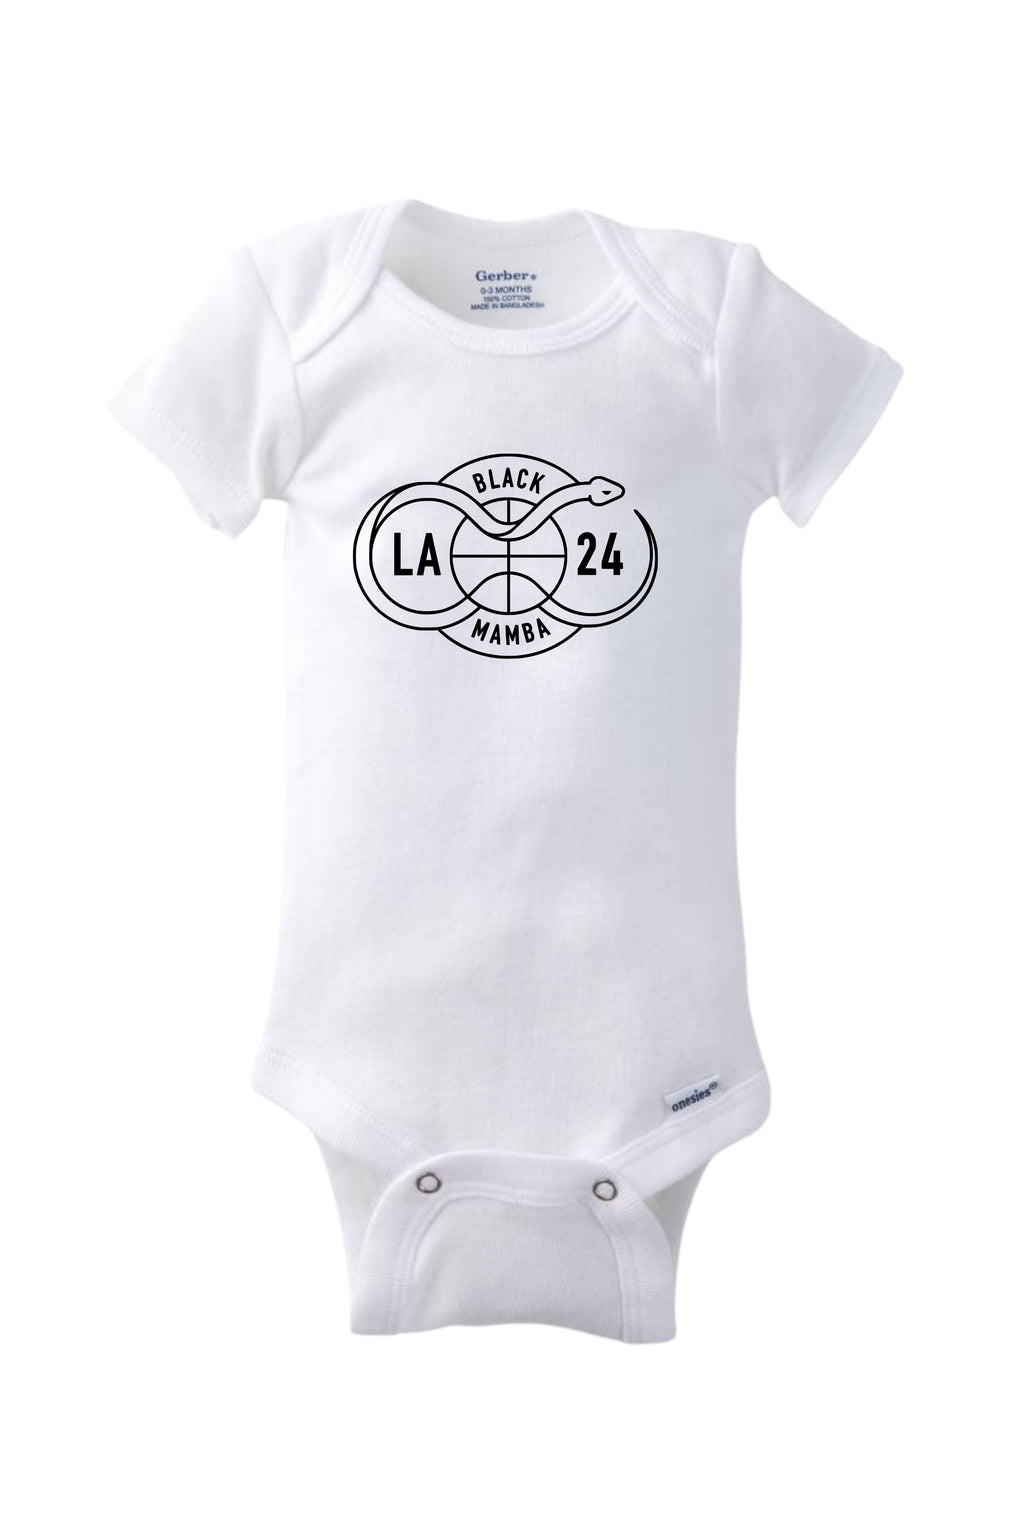 The Beatles Baby Onesie-Article & Thread Boutique